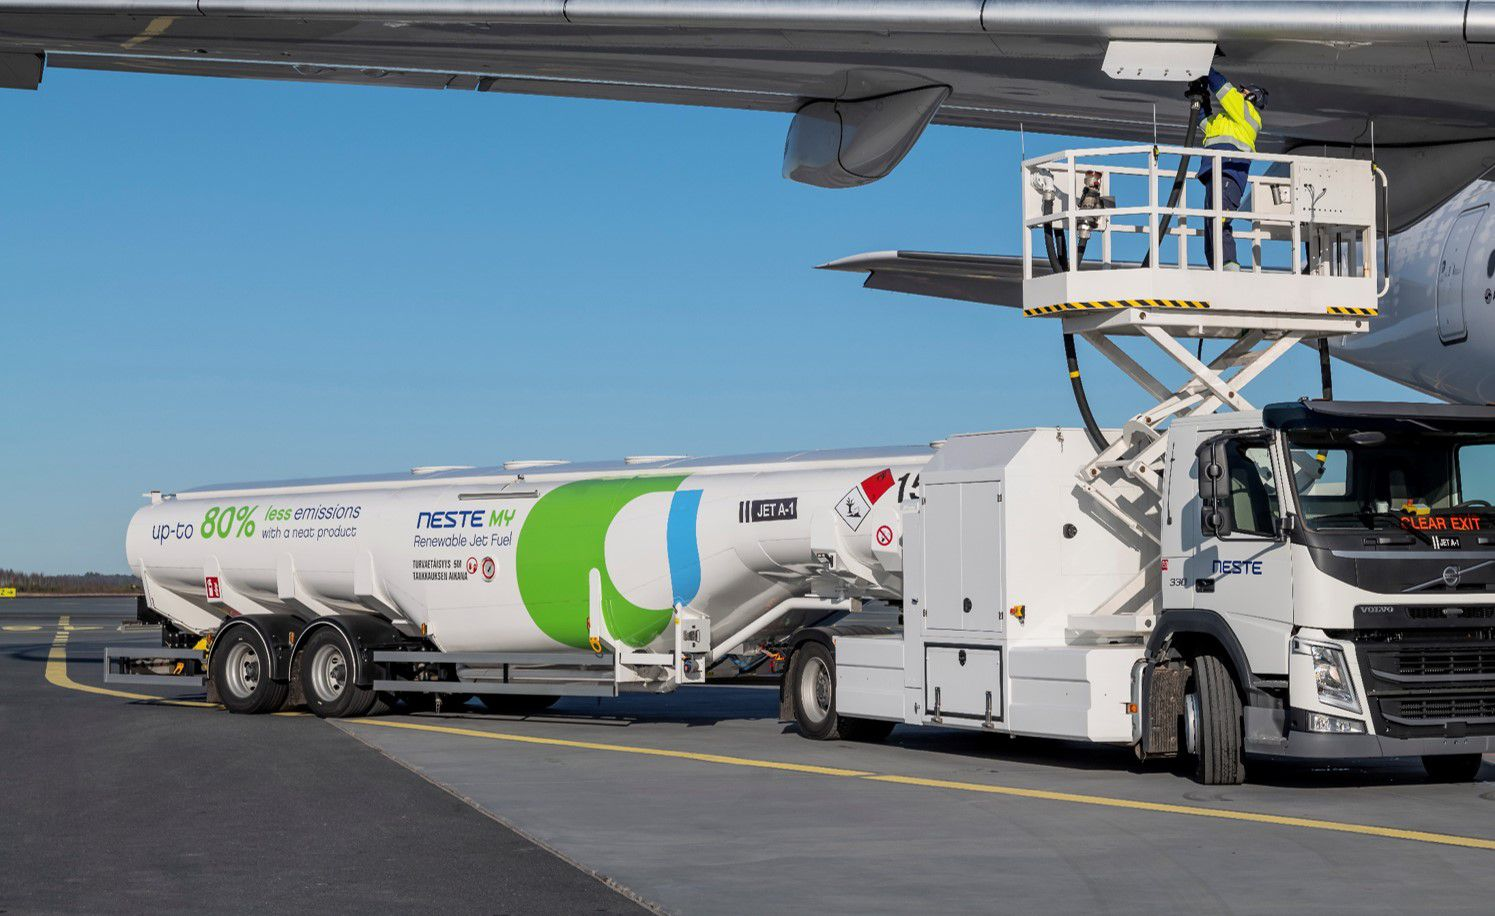 Airbus and Rolls-Royce will make flight tests of passenger airplanes with the use of 100% sustainable aviation fuel. Part 2